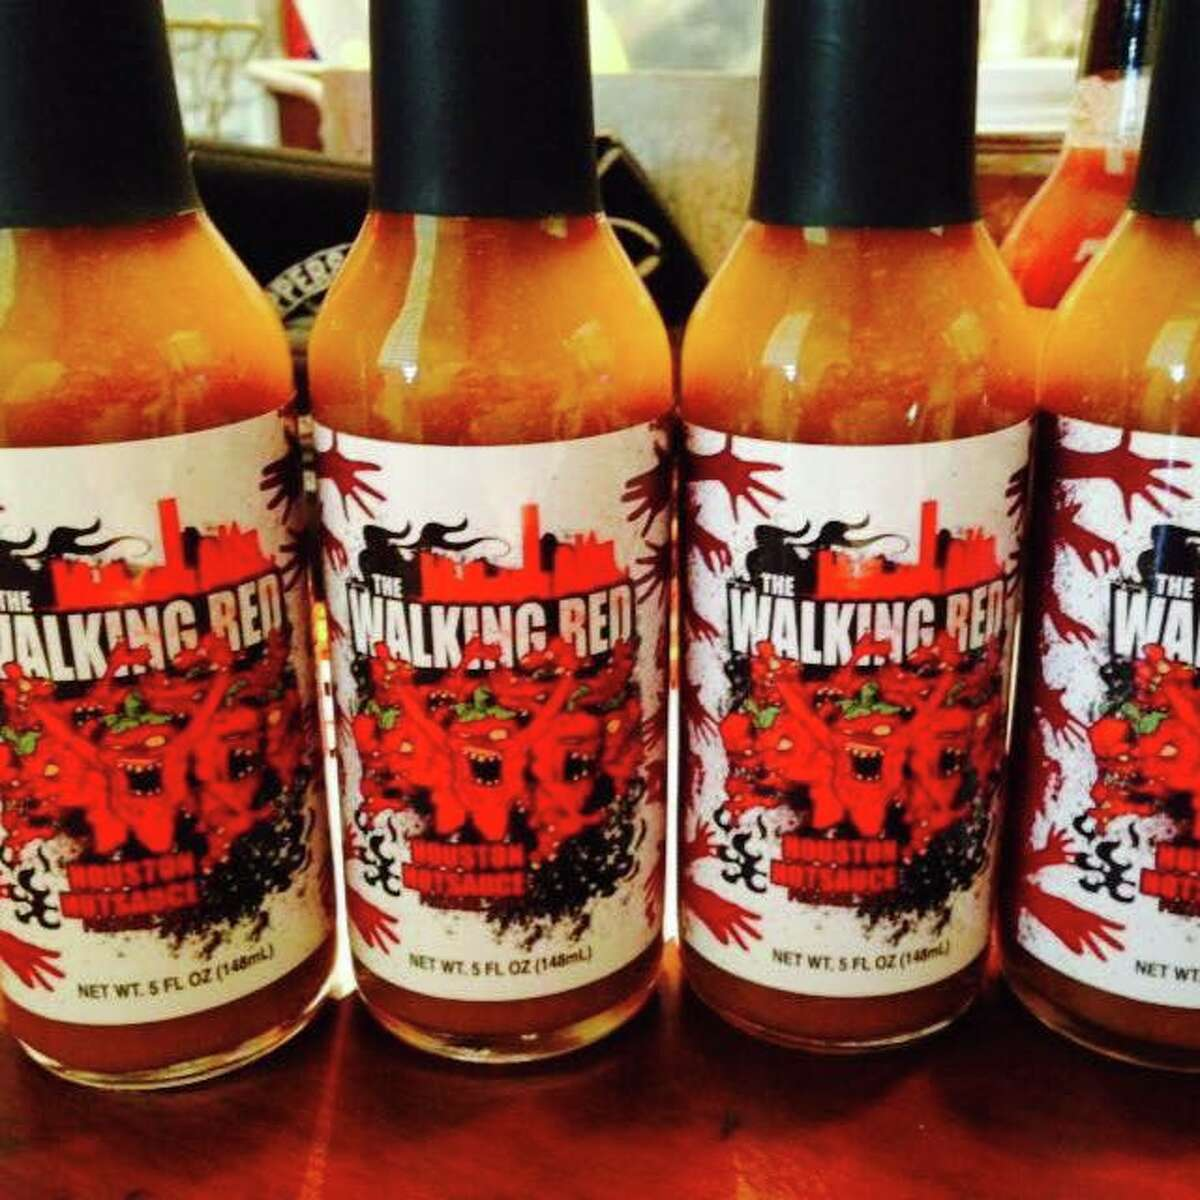 The 16th Texas Hot Sauce Festival will be held Sept. 23 and 24 at the Bayou City Event Center in Houston. Shown: Scenes from past festivals.